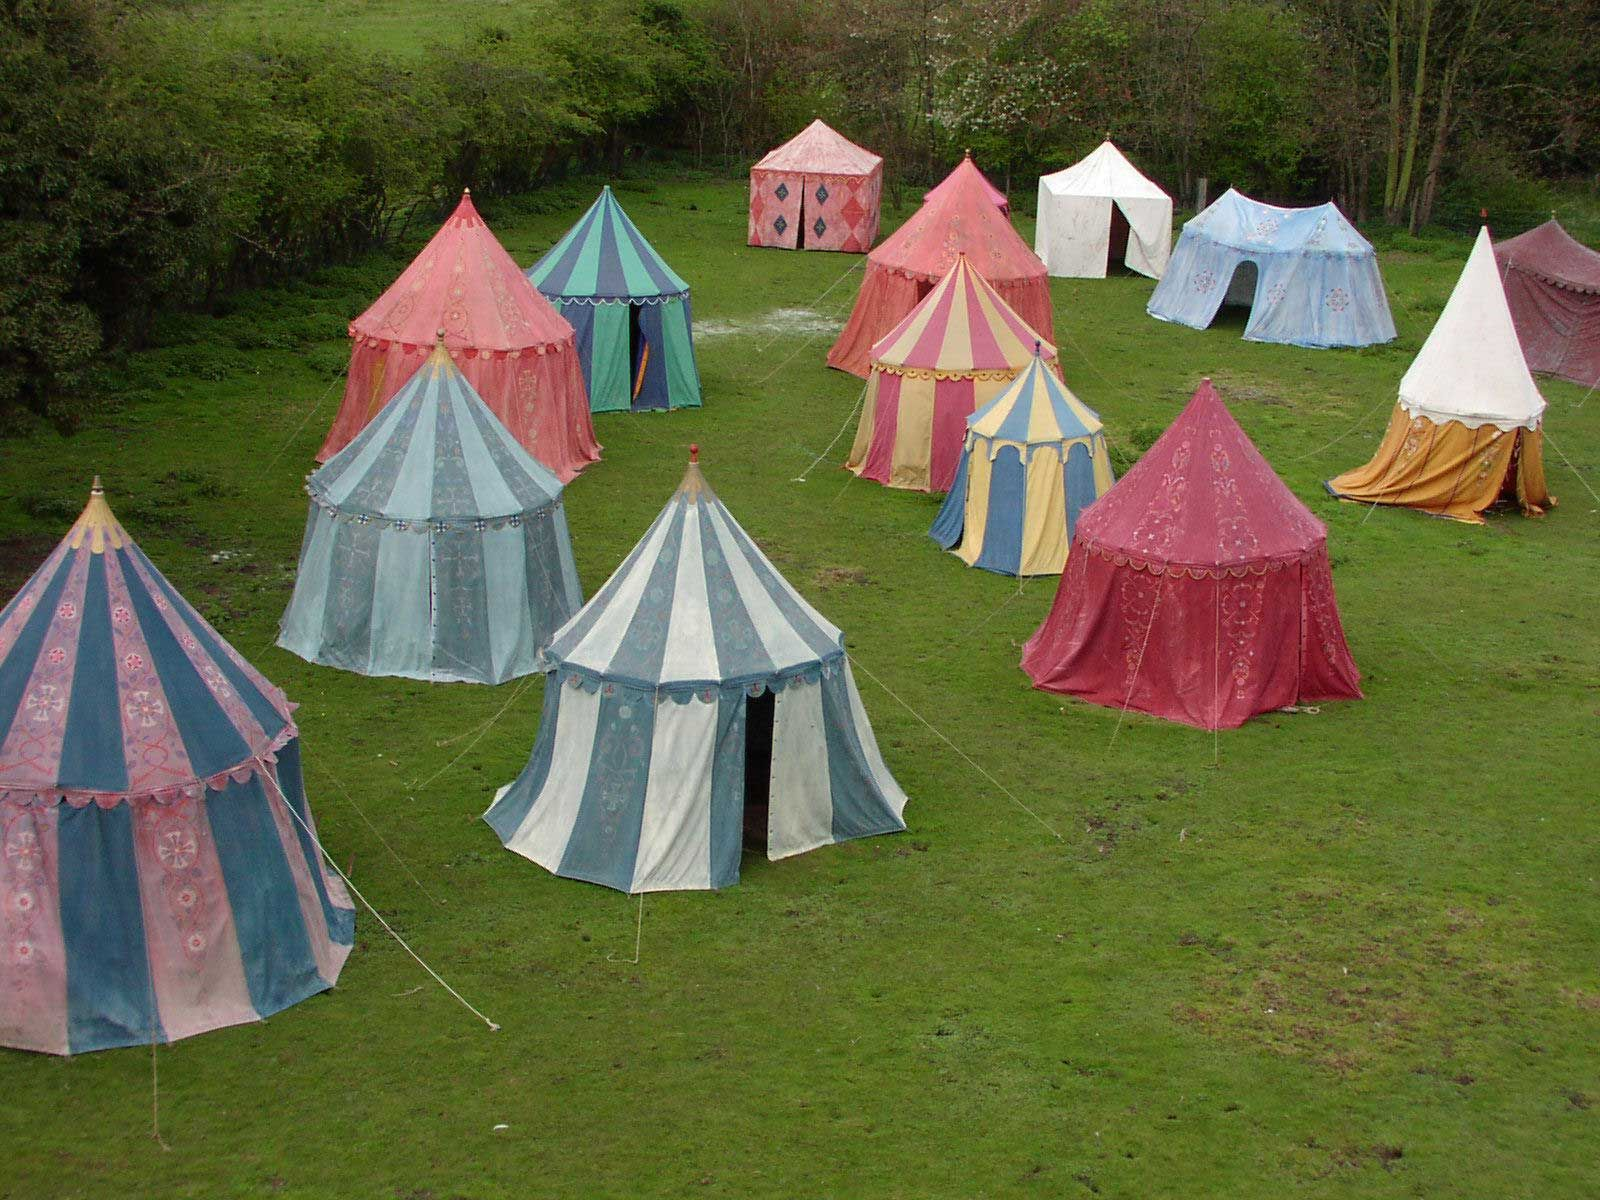 over 30 ornate and panel tents of assorted colours are available